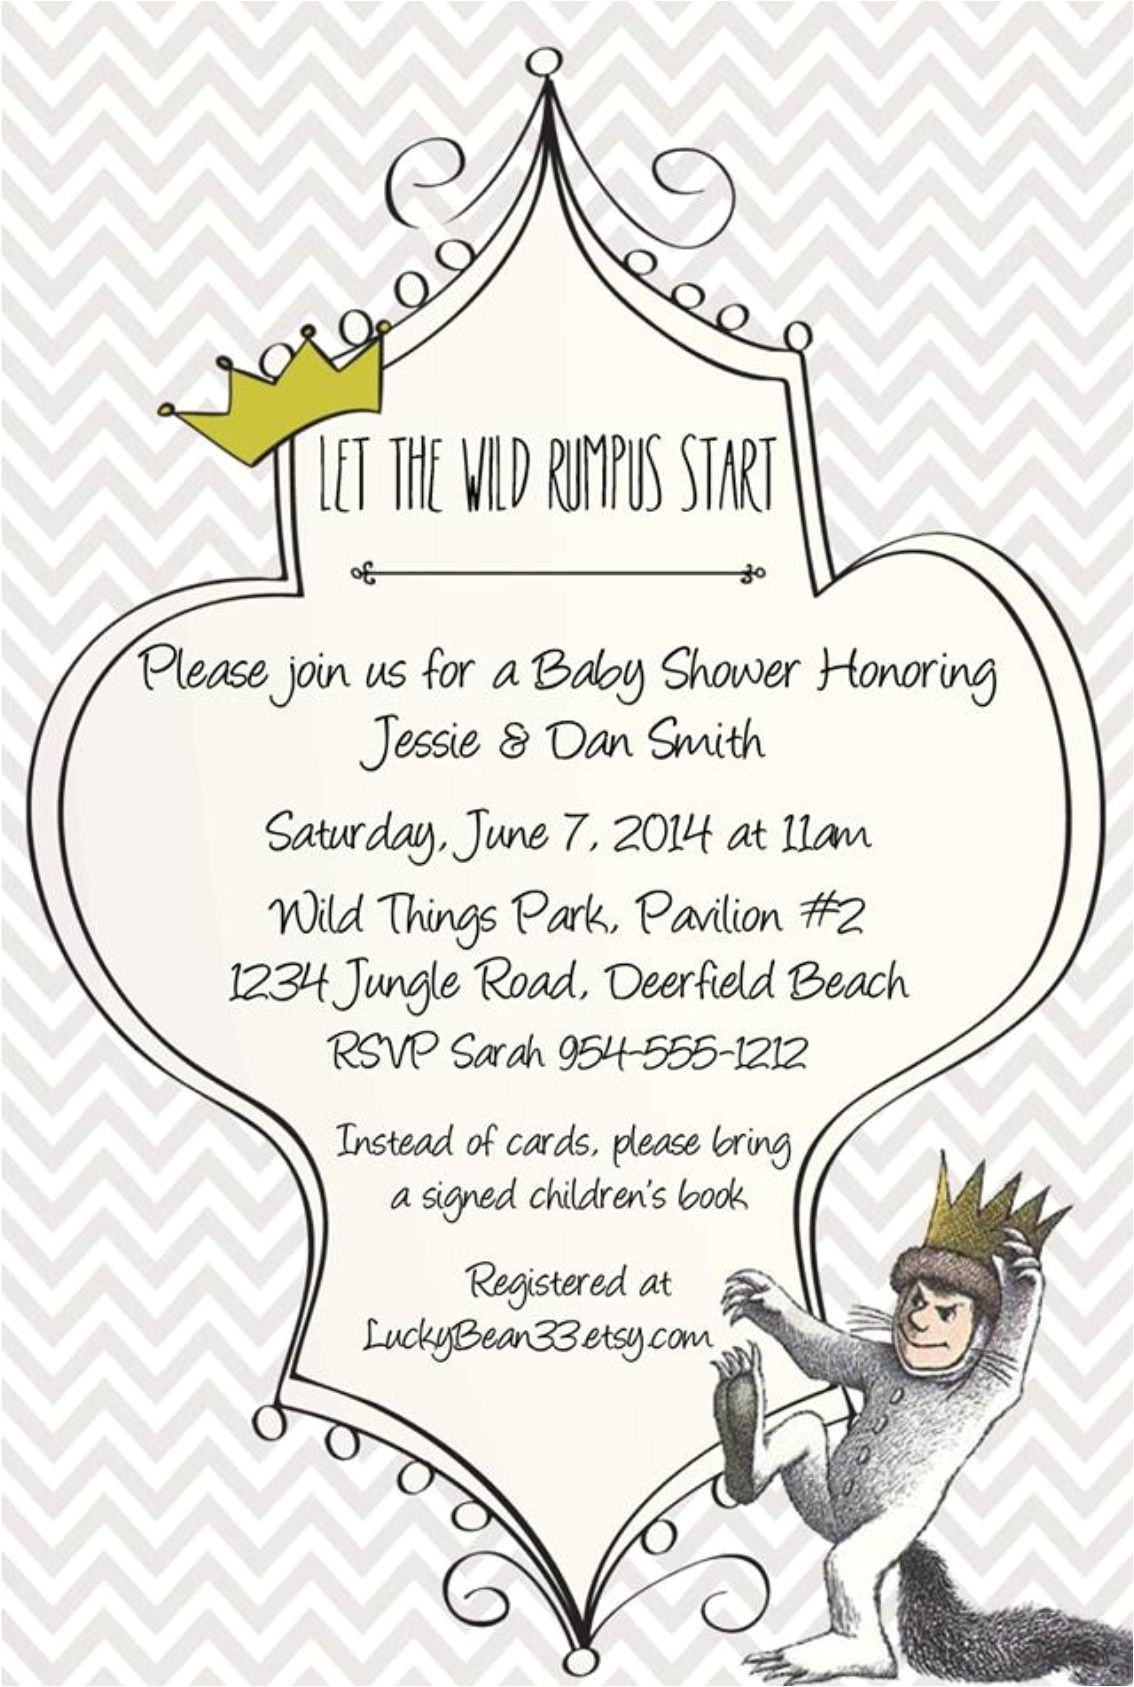 Where the Wild Things are Birthday Invitation Template where the Wild Things are Invitation Template Www